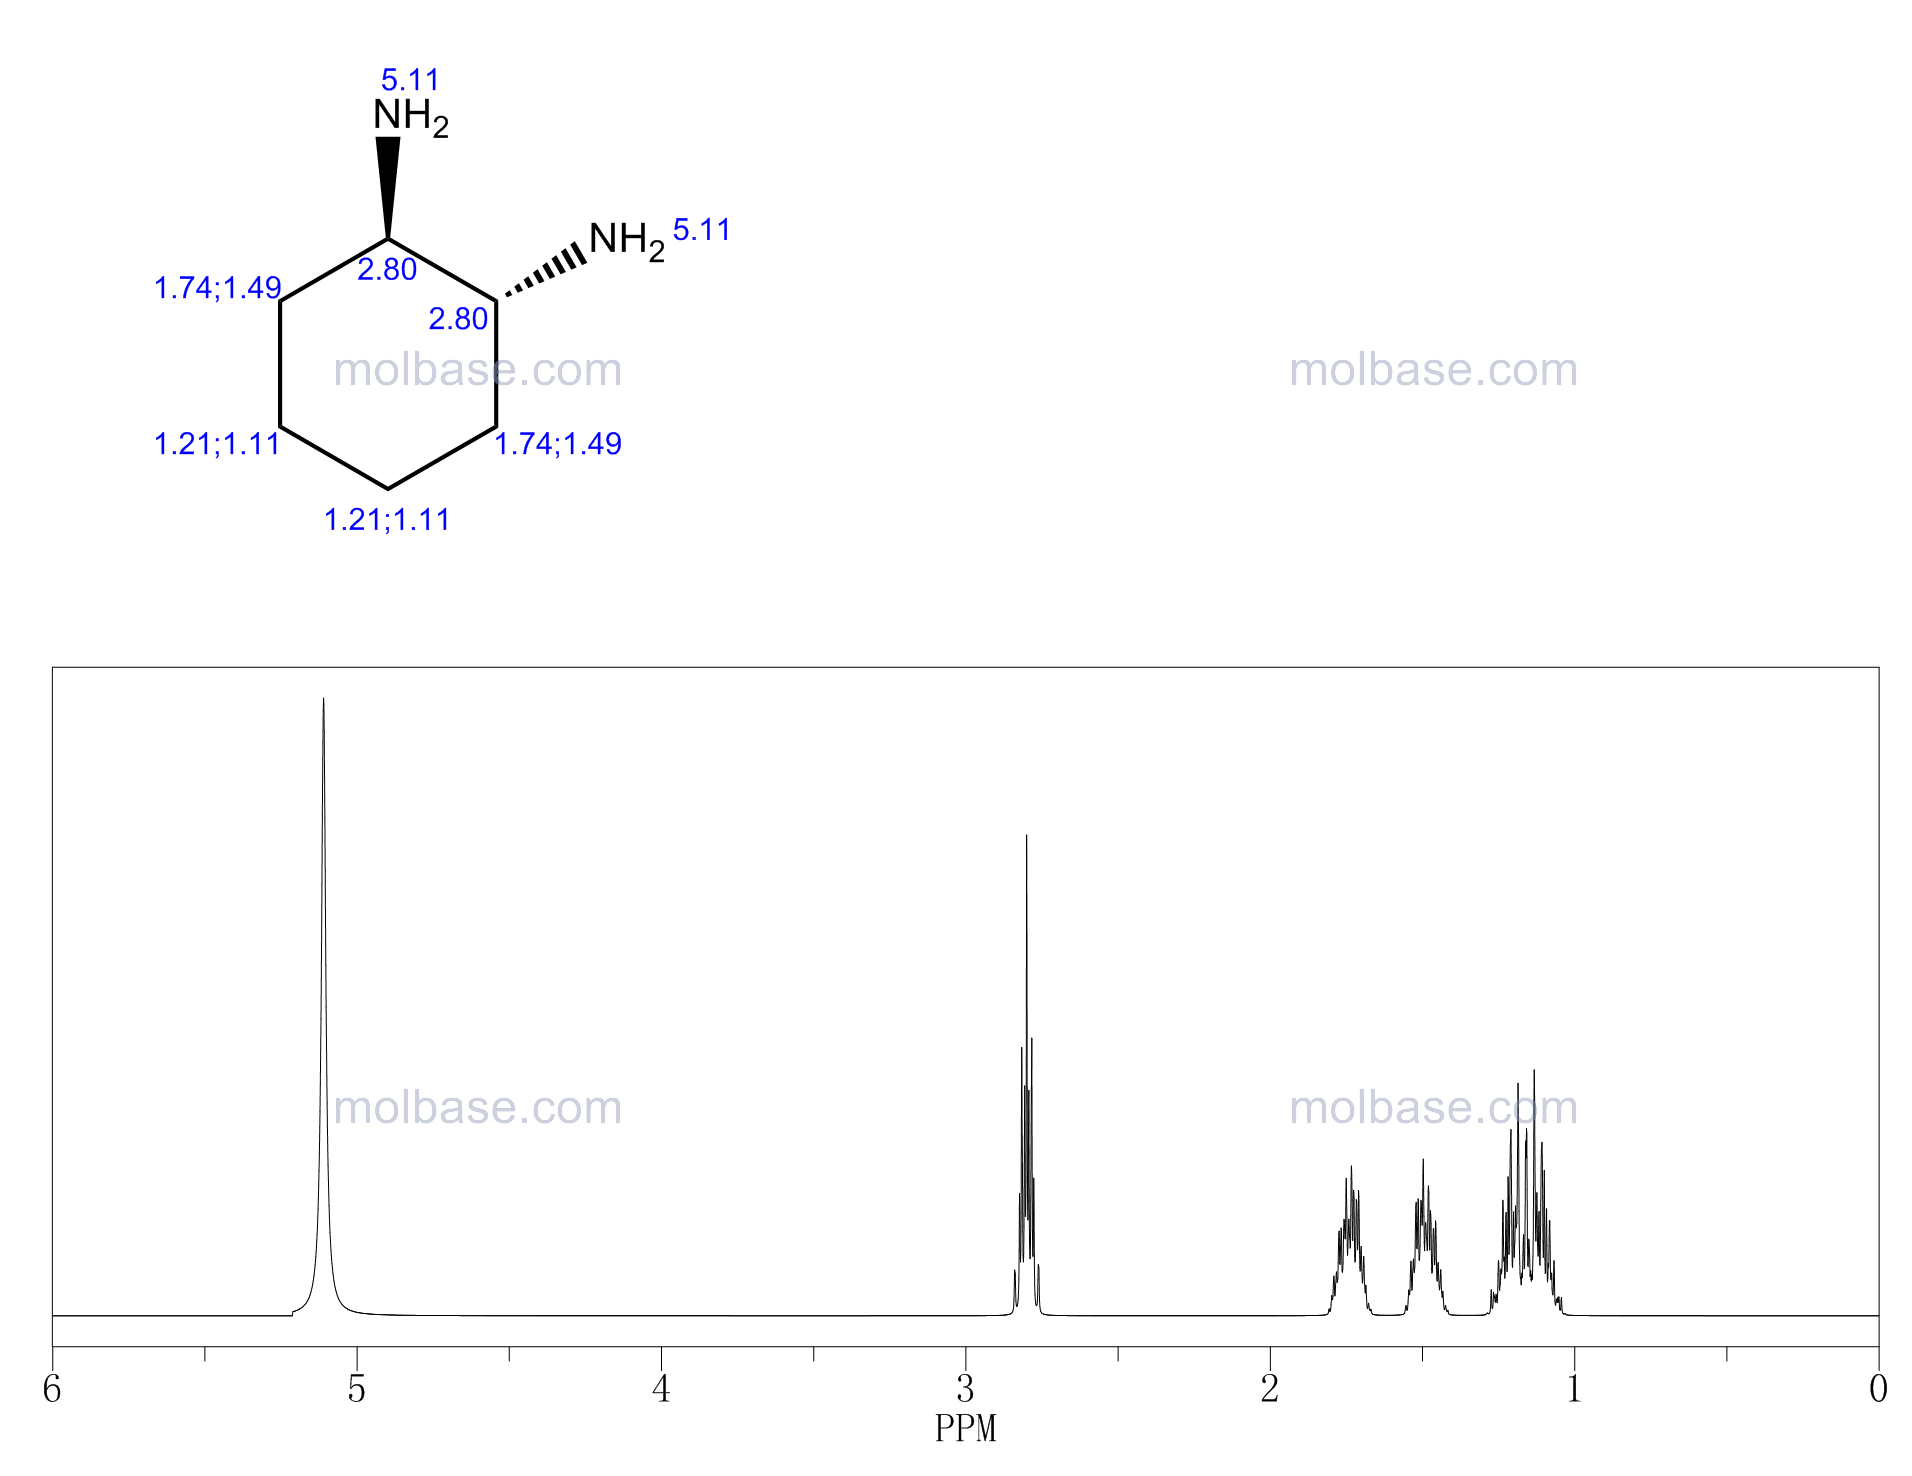 (1R,2R)-(-)-1,2-Diaminocyclohexane NMR spectra analysis, Chemical CAS NO. 20439-47-8 NMR spectral analysis, (1R,2R)-(-)-1,2-Diaminocyclohexane C-NMR spectrum